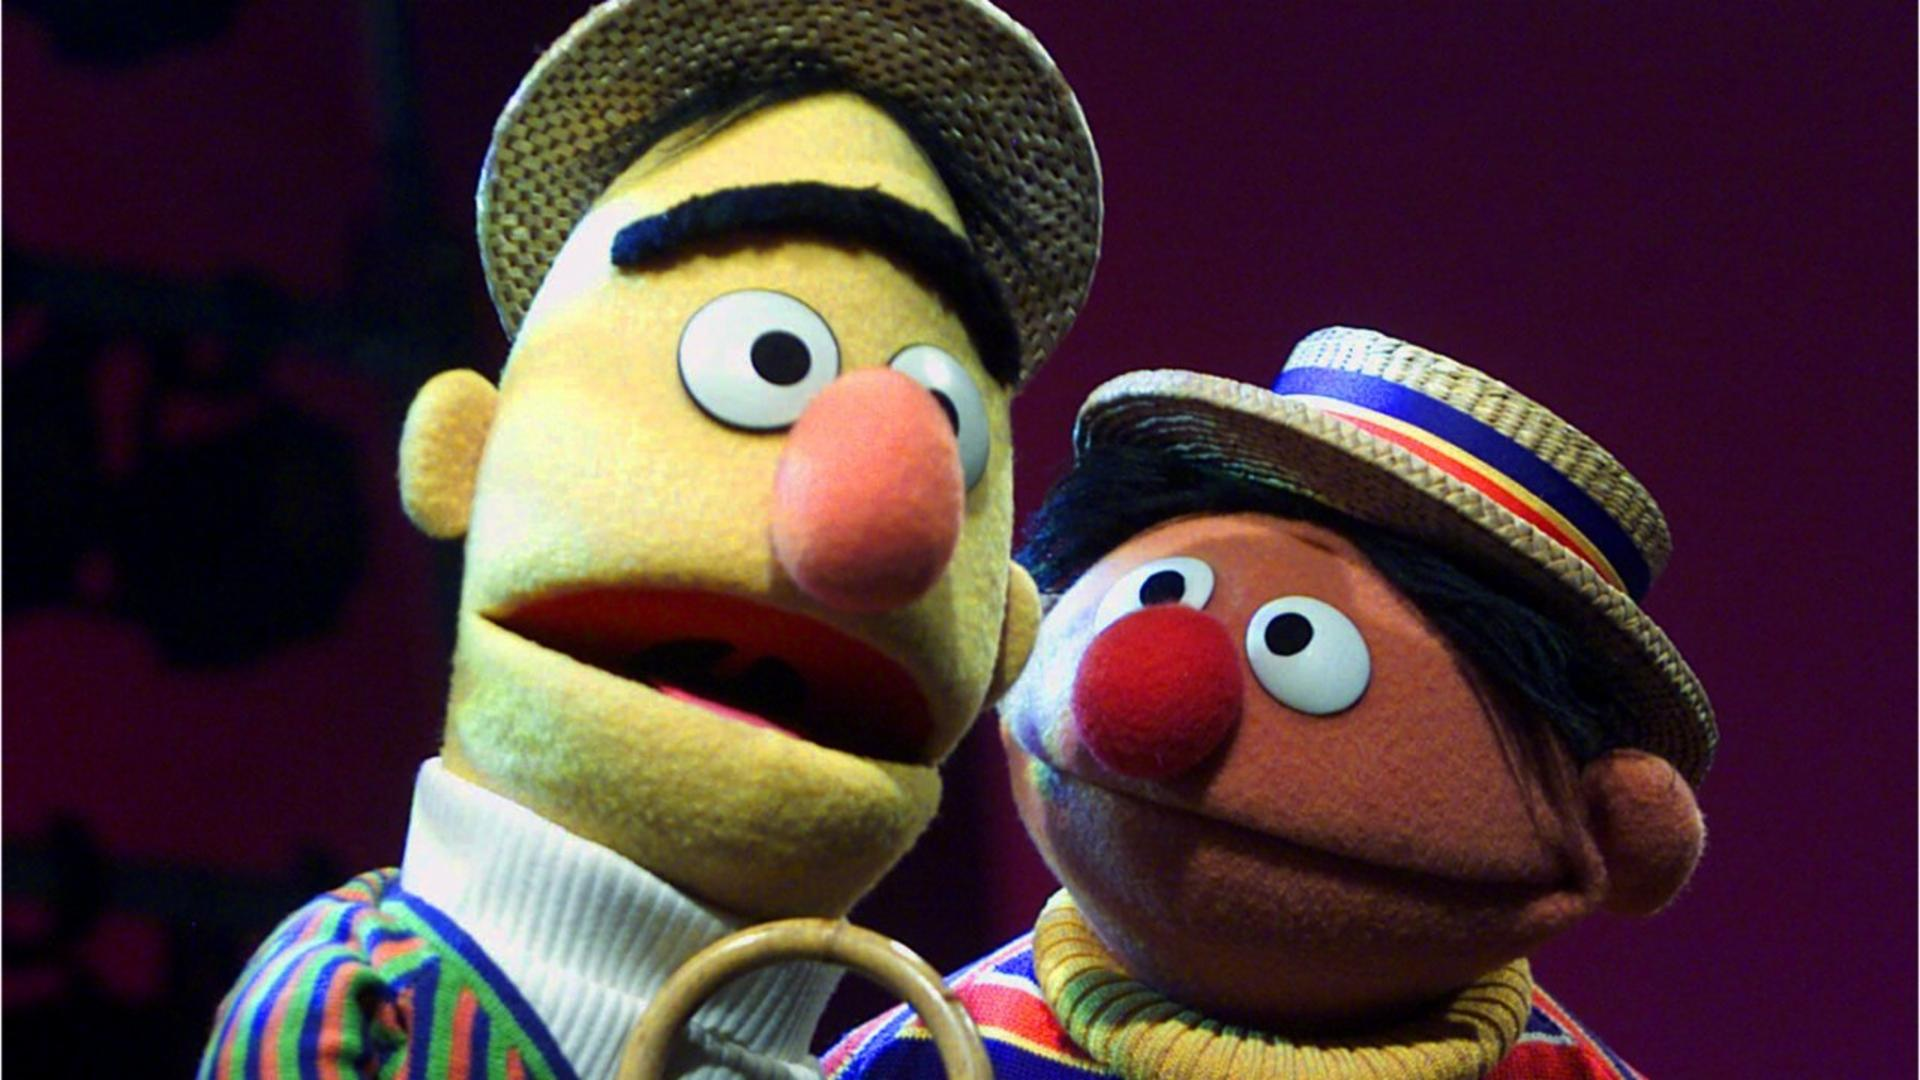 Entertainment - Former Sesame Street Writer Hints That Bert & Ernie Are Gay